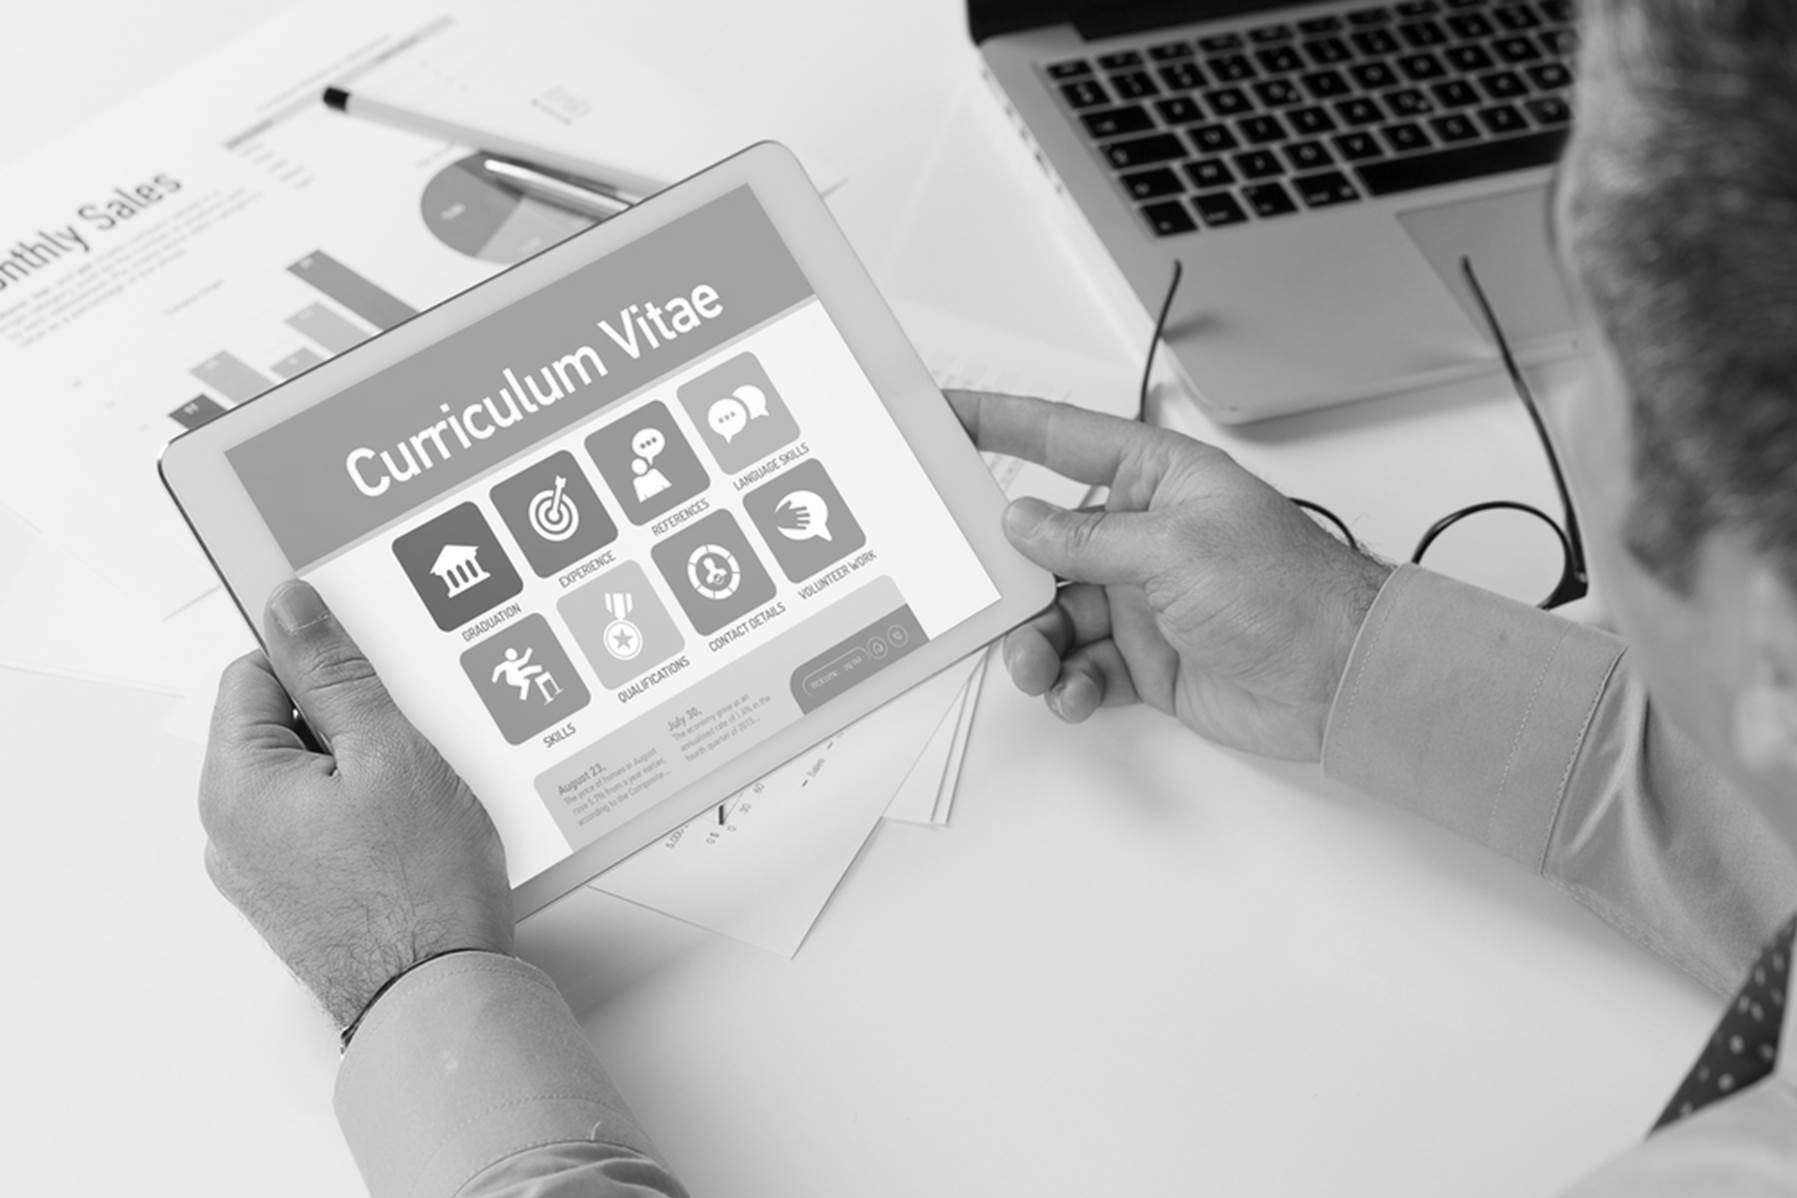 Claus Michael Sattler - Curriculum Vitae in Kurzform als eBook